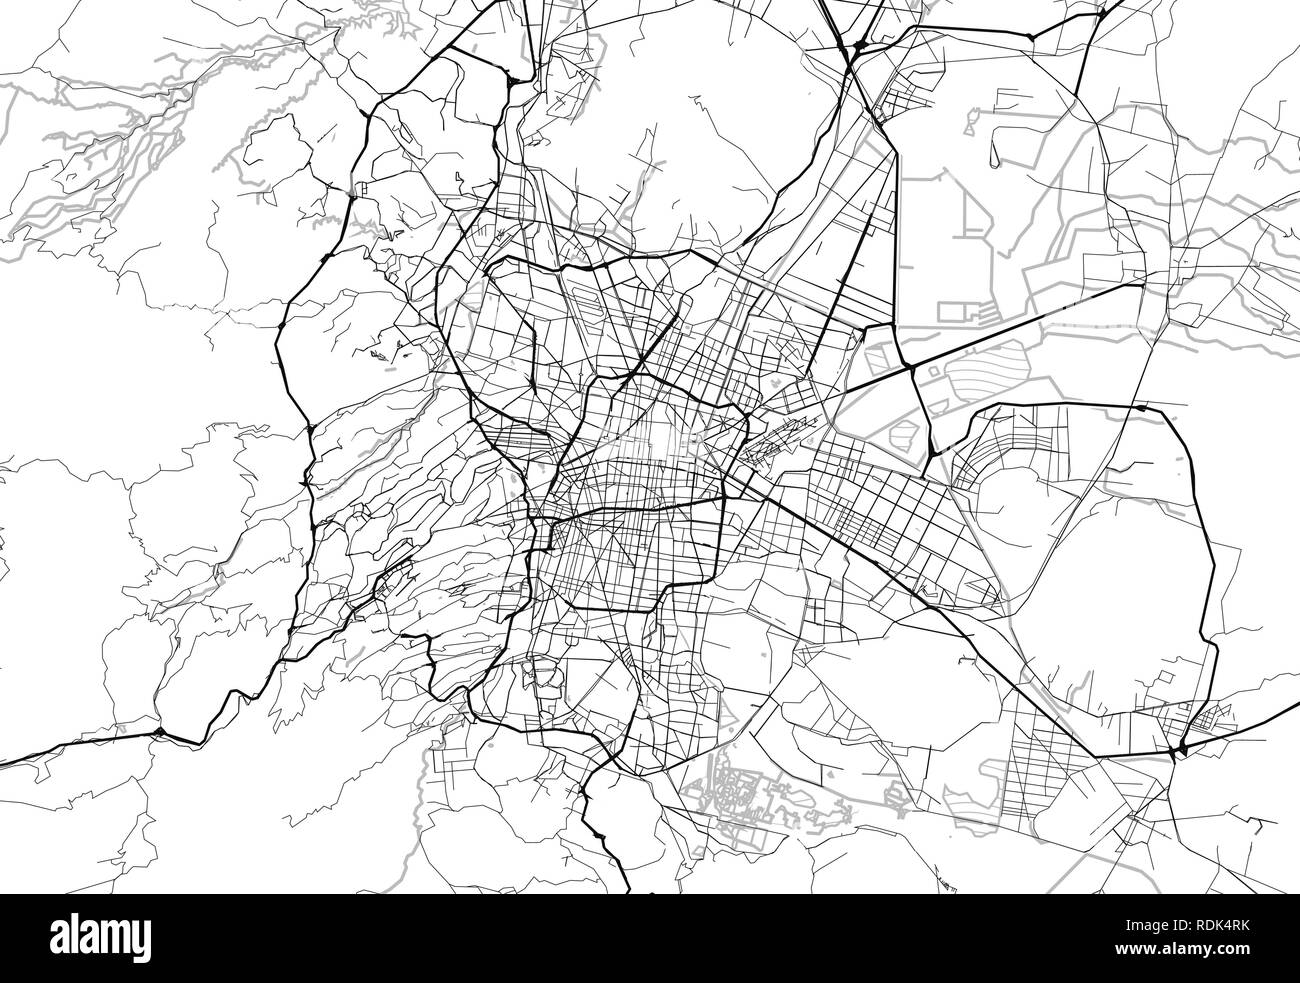 Area map of Mexico City, Mexico. This artmap of Mexico City contains geography lines for land mass, water, major and minor roads. - Stock Vector